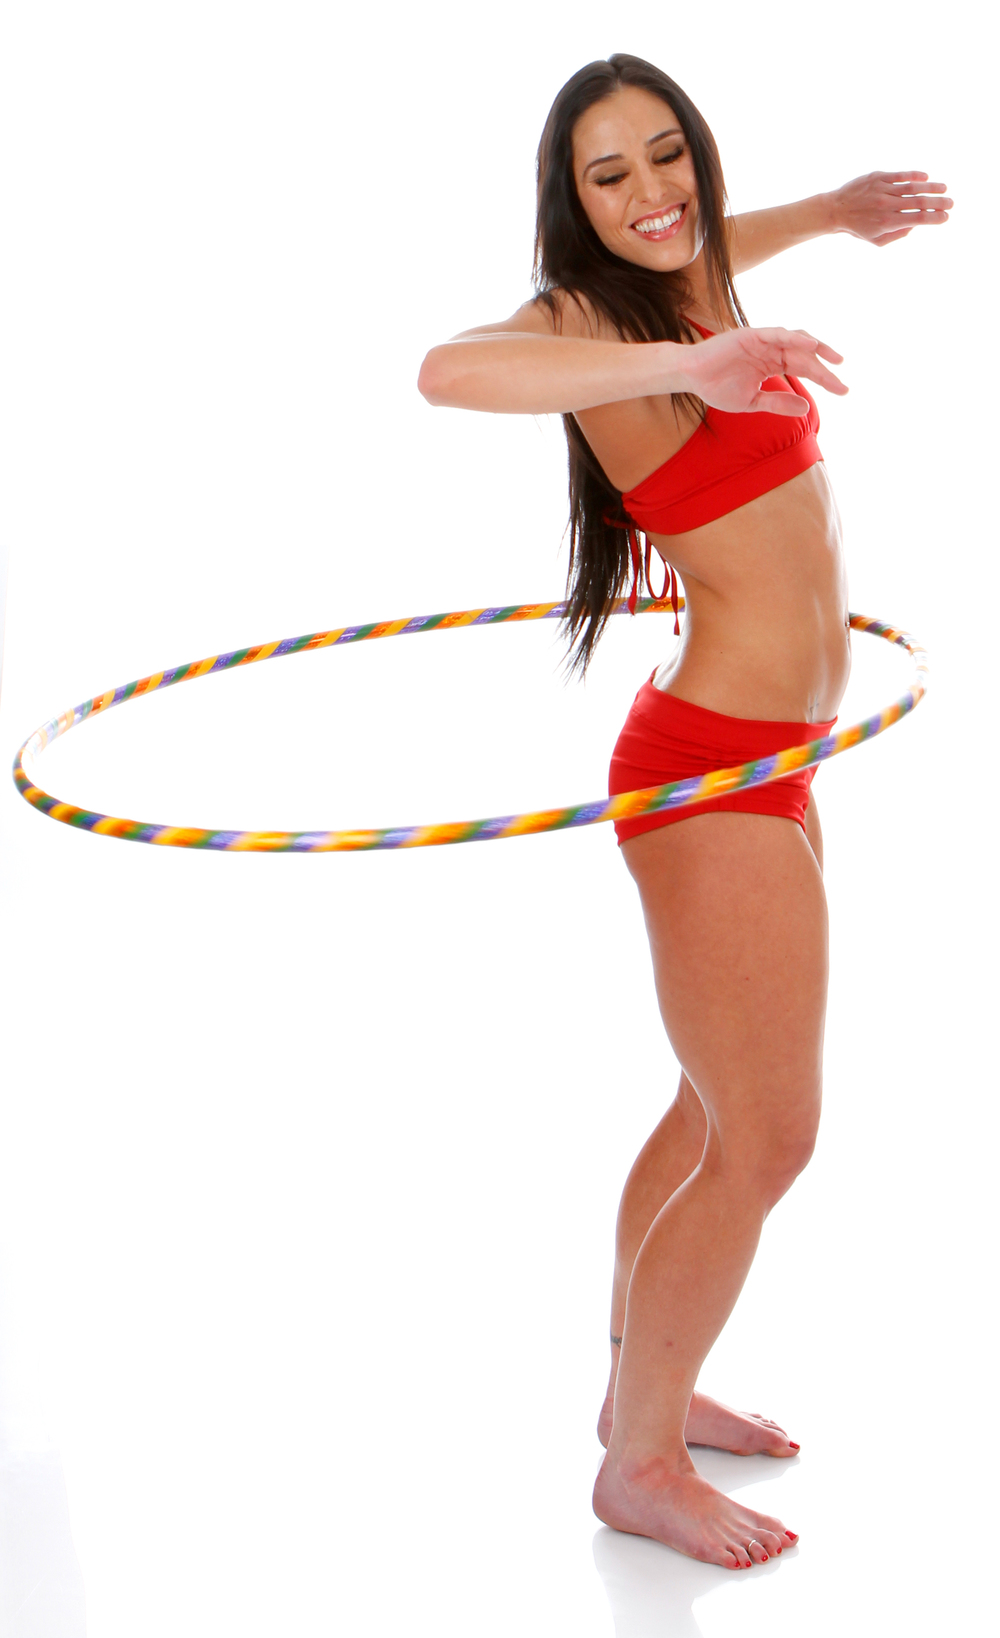 How much do you want to Hoola hoop right now?!